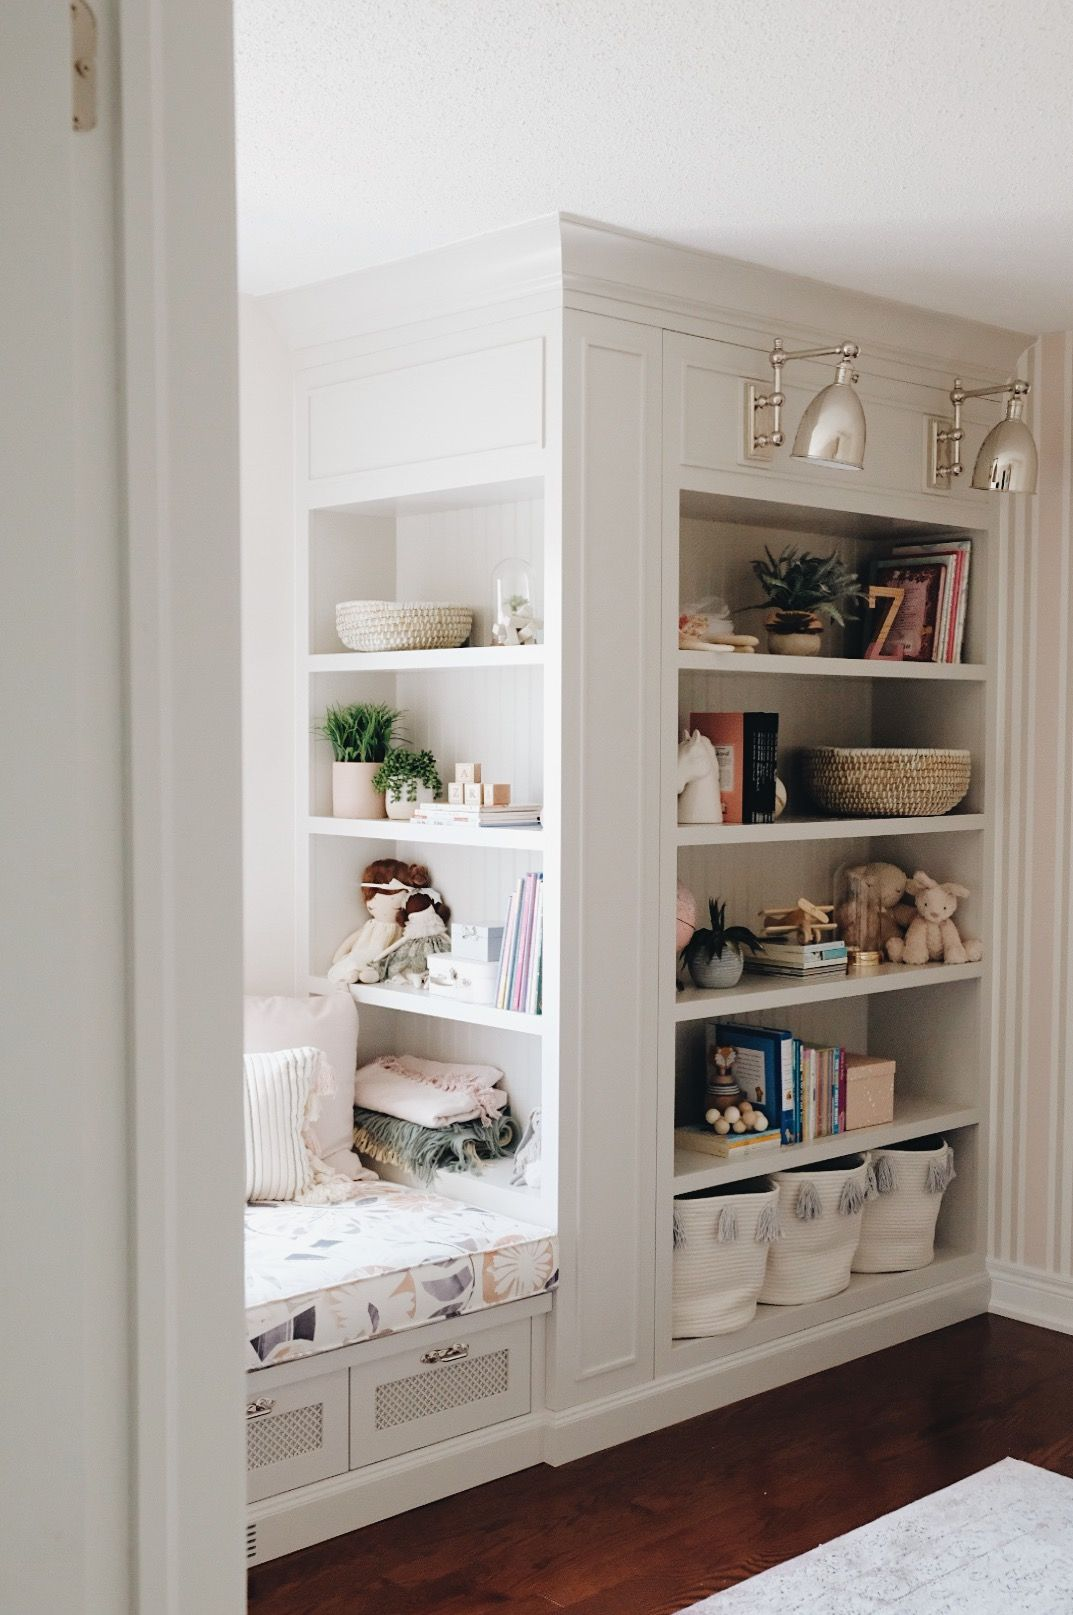 New Client Reveal: Zara's Little Girl Playroom images